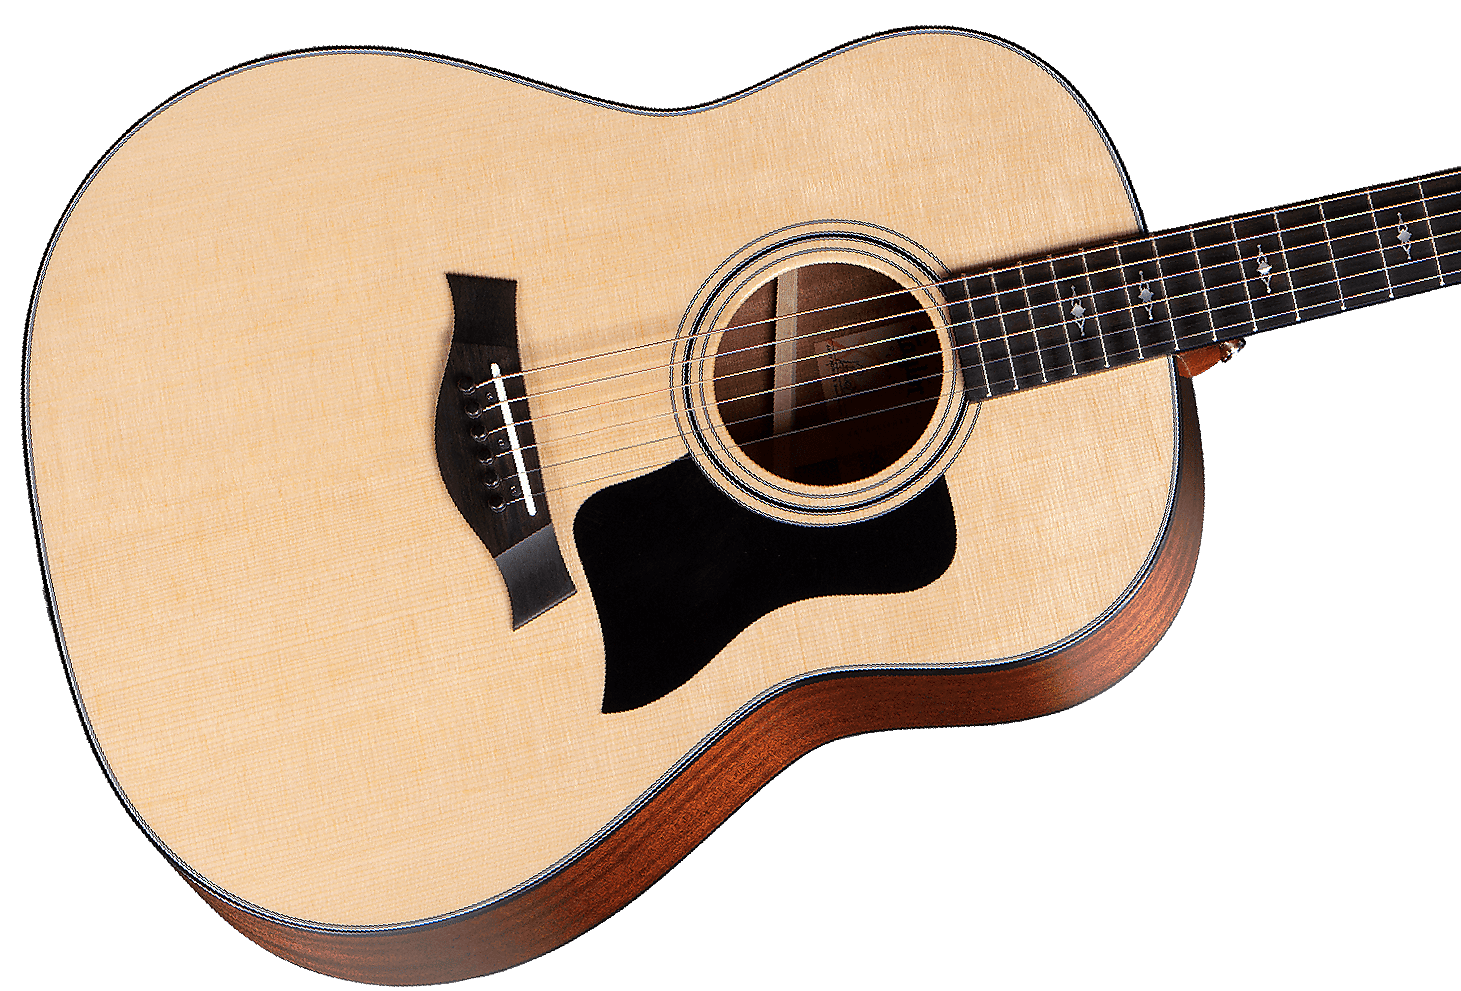 NEW! Taylor 317 Sitka Spruce Top Sapele Body Grand Pacific V-Class Acoustic  Guitar Authorized Dealer